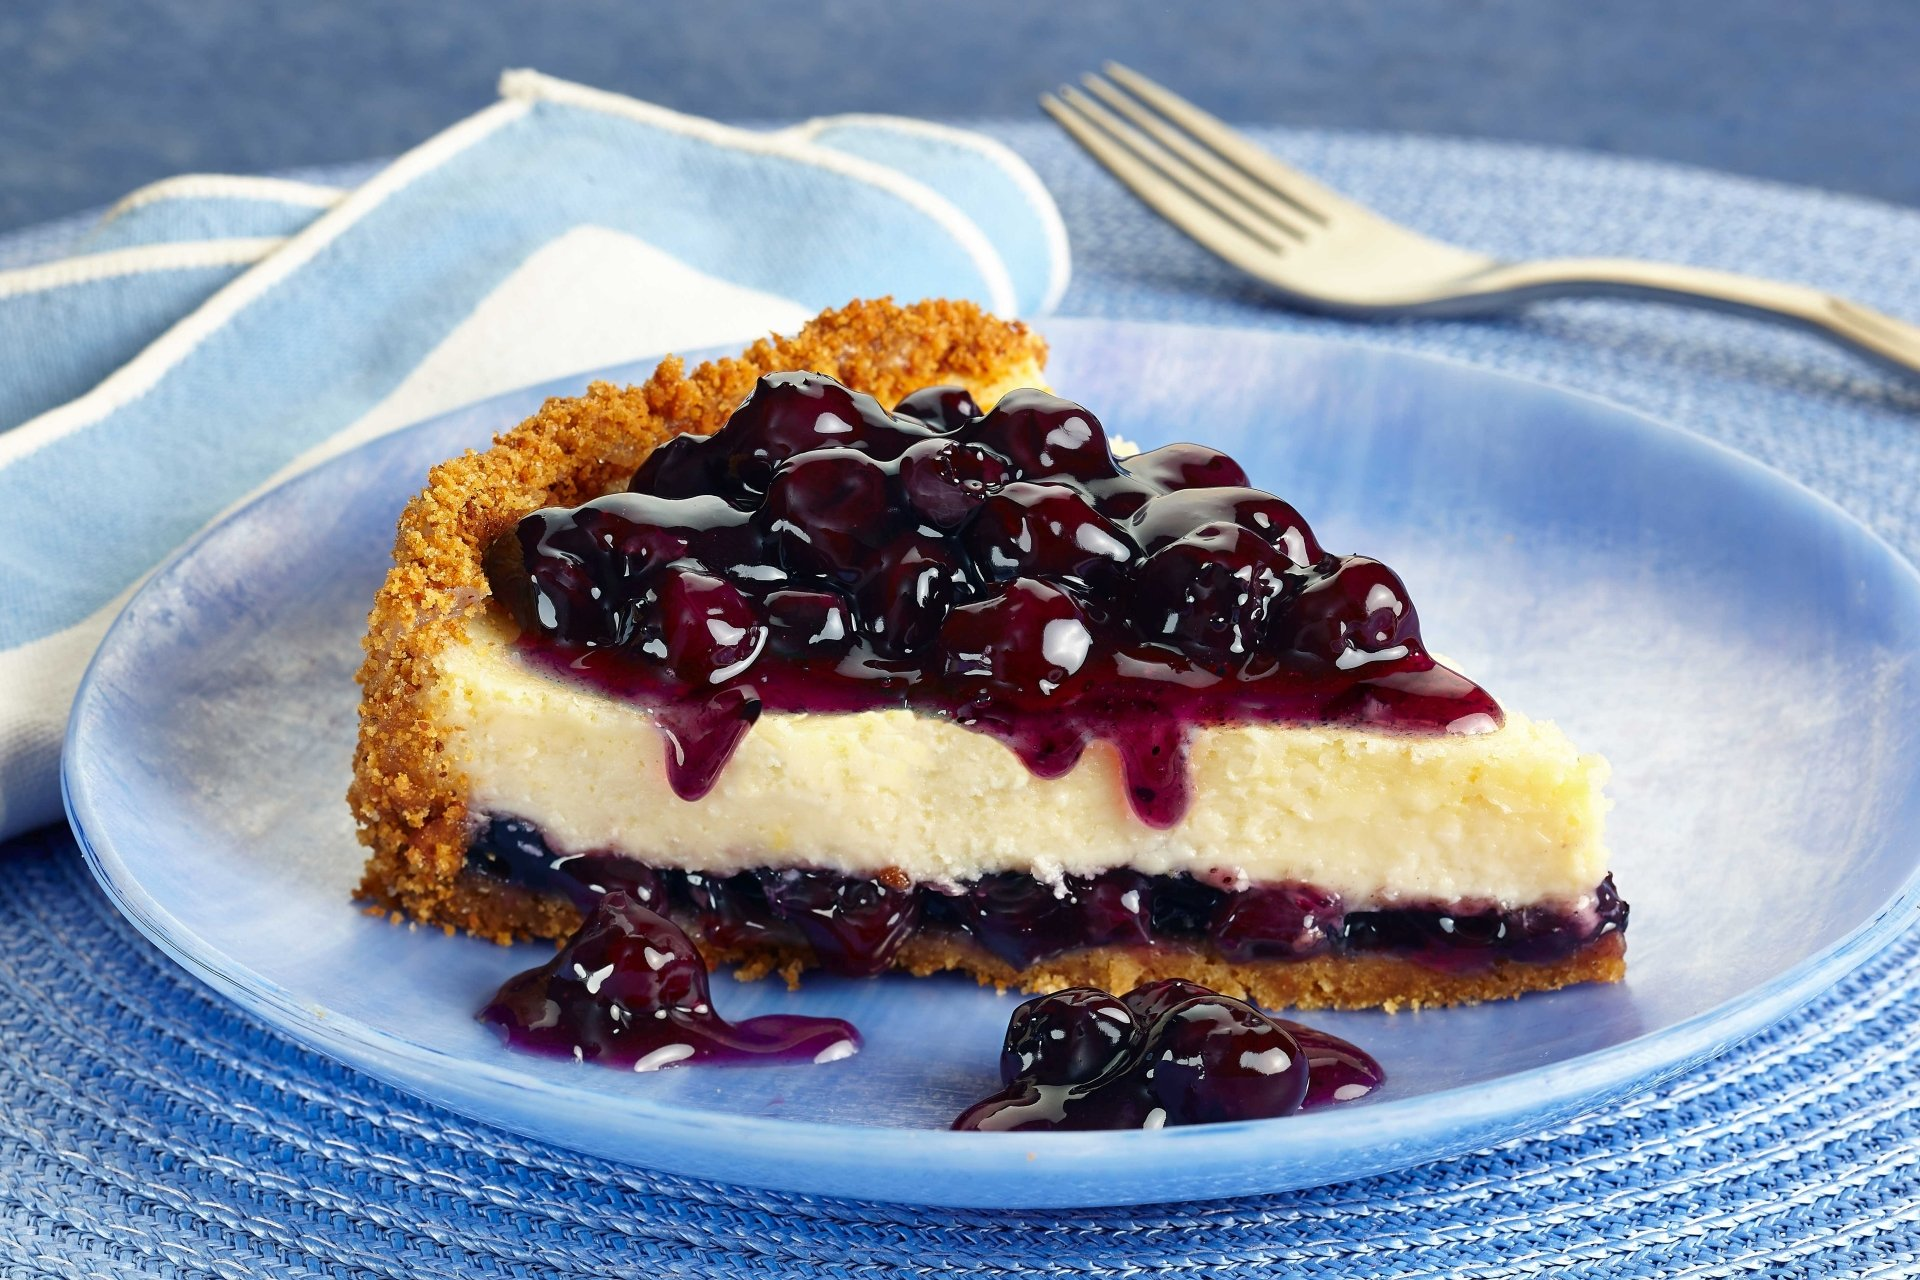 Food - Pie  Blueberry Cheesecake Dessert Sweets Wallpaper